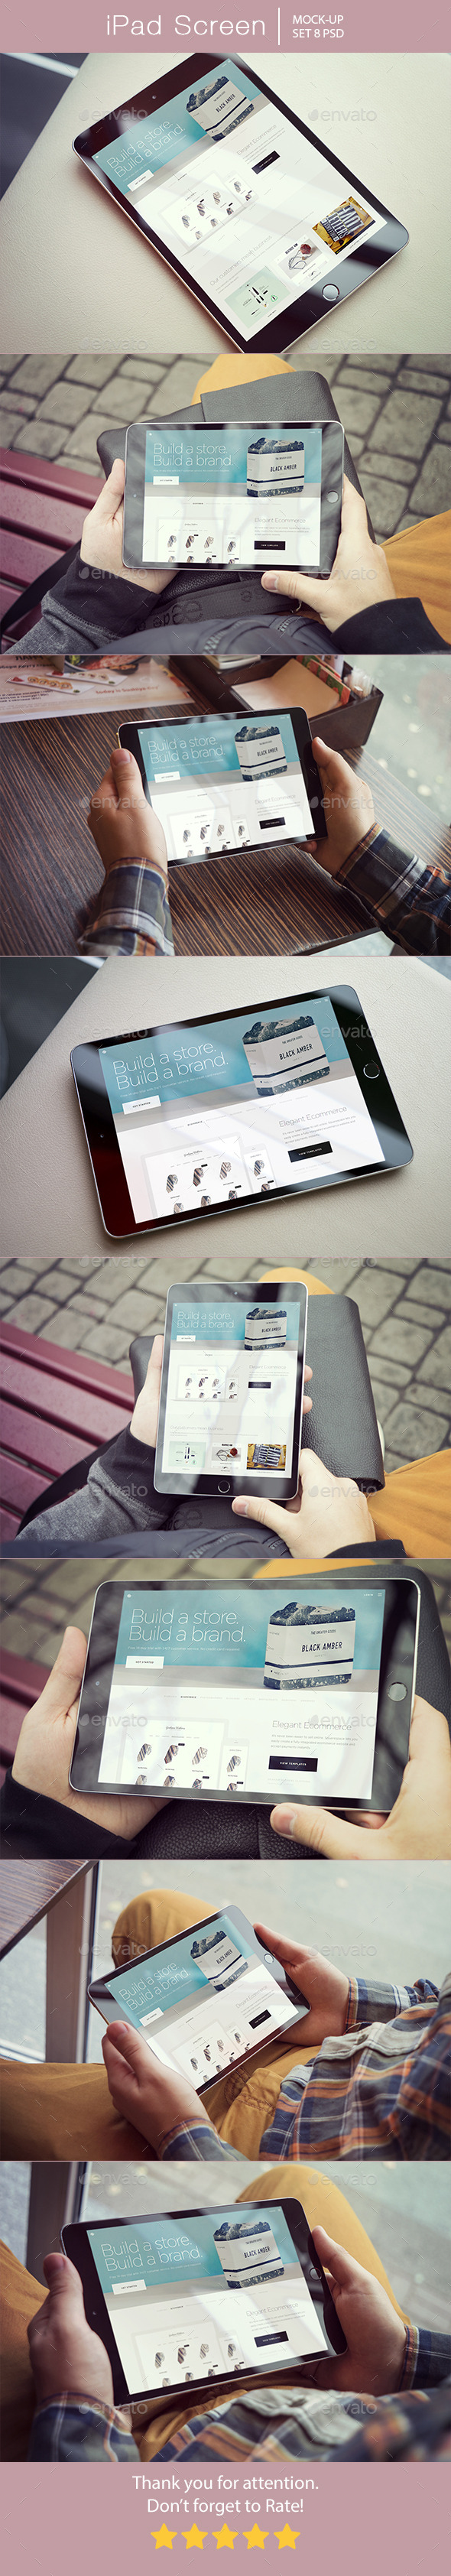 iPad Screen Mockup - Mobile Displays